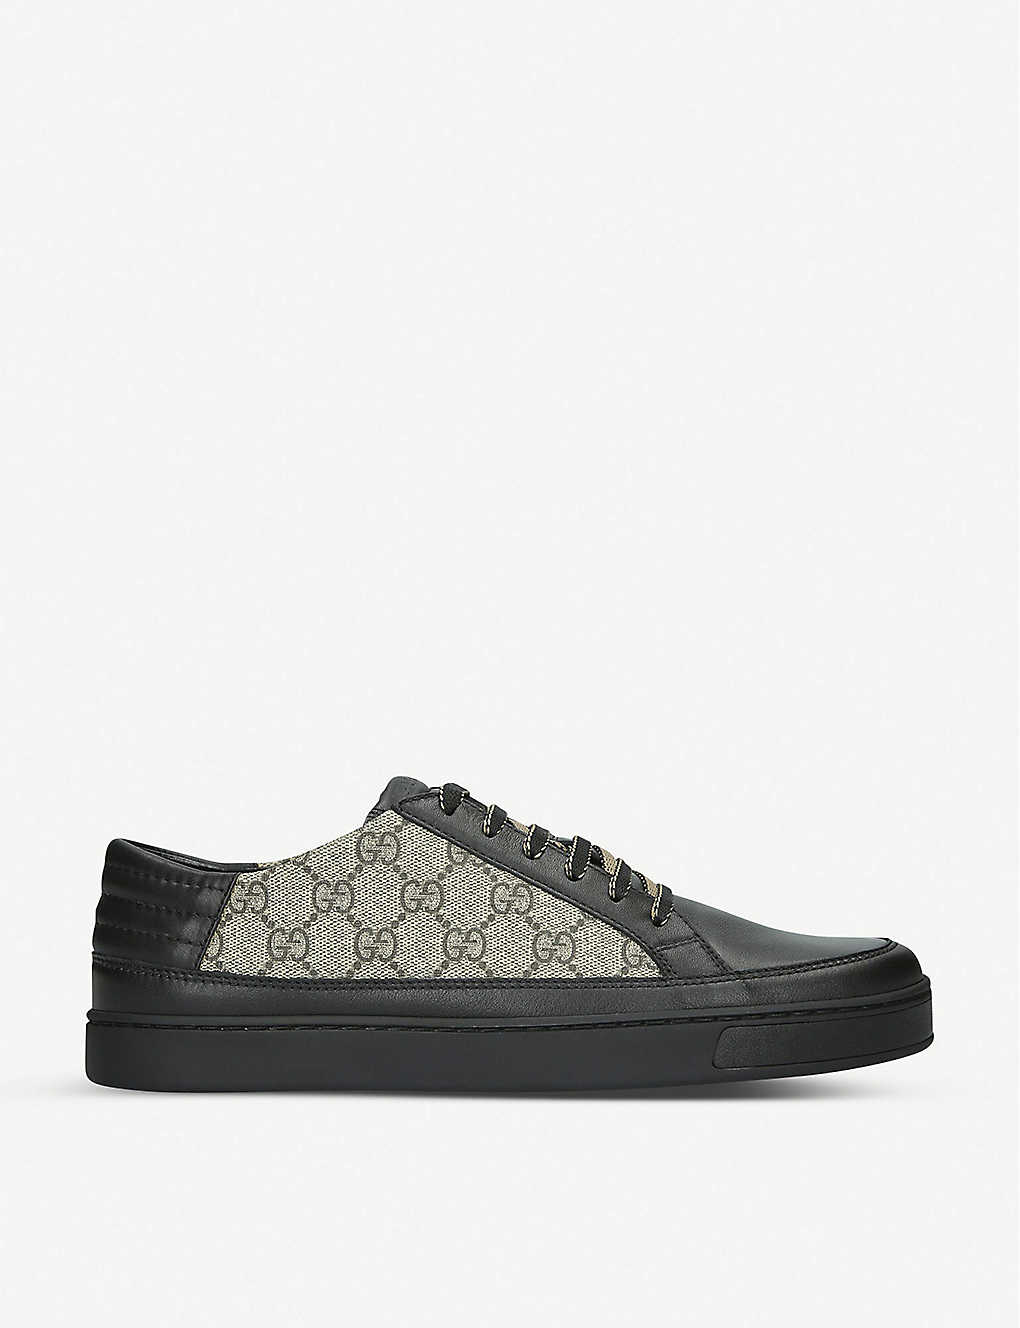 4909c0e0c61 Common GG Supreme leather and canvas trainers - Black ...